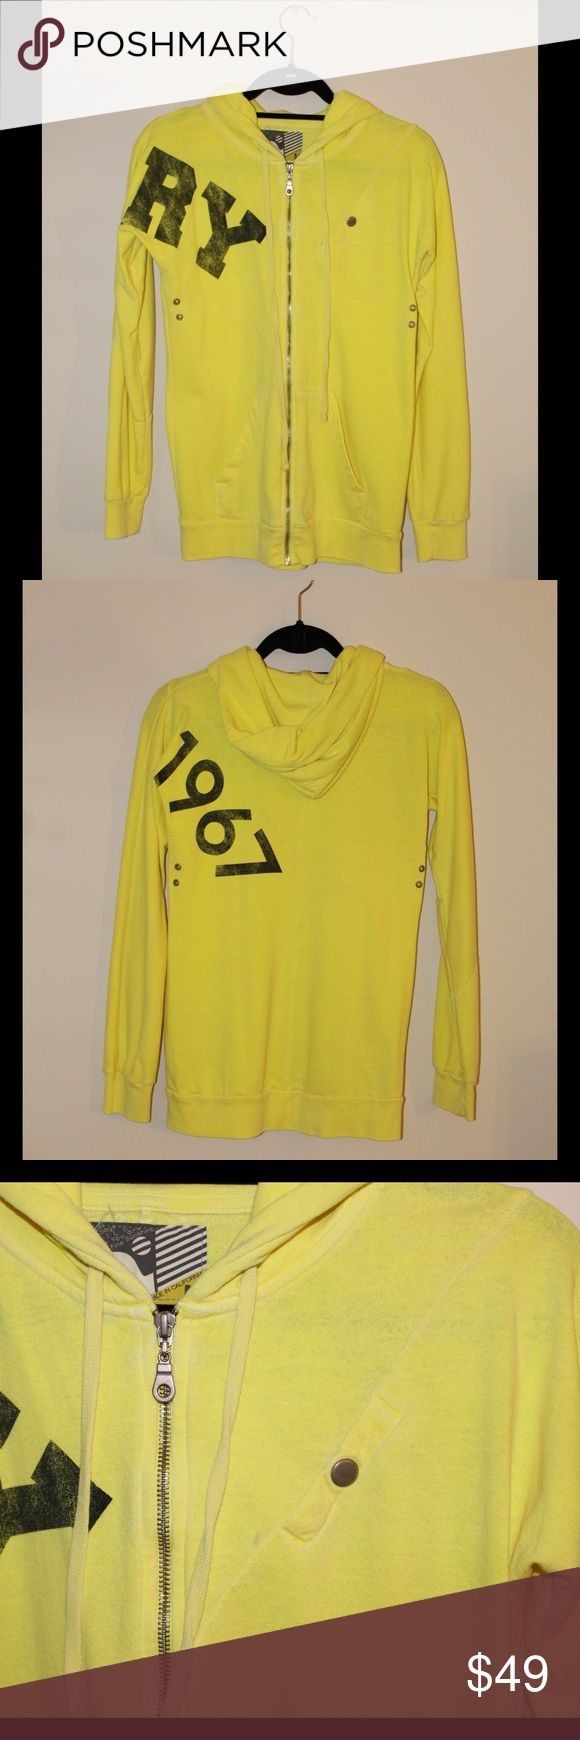 Rebel Yell Neon Yellow Hooded Sweatshirt This is a gently worn, hooded sweatshirt from Rebel Yell. Vintage style print. Zippered front and two front pockets. Small discoloration on front left - shown up close in last picture. Tops Sweatshirts & Hoodies